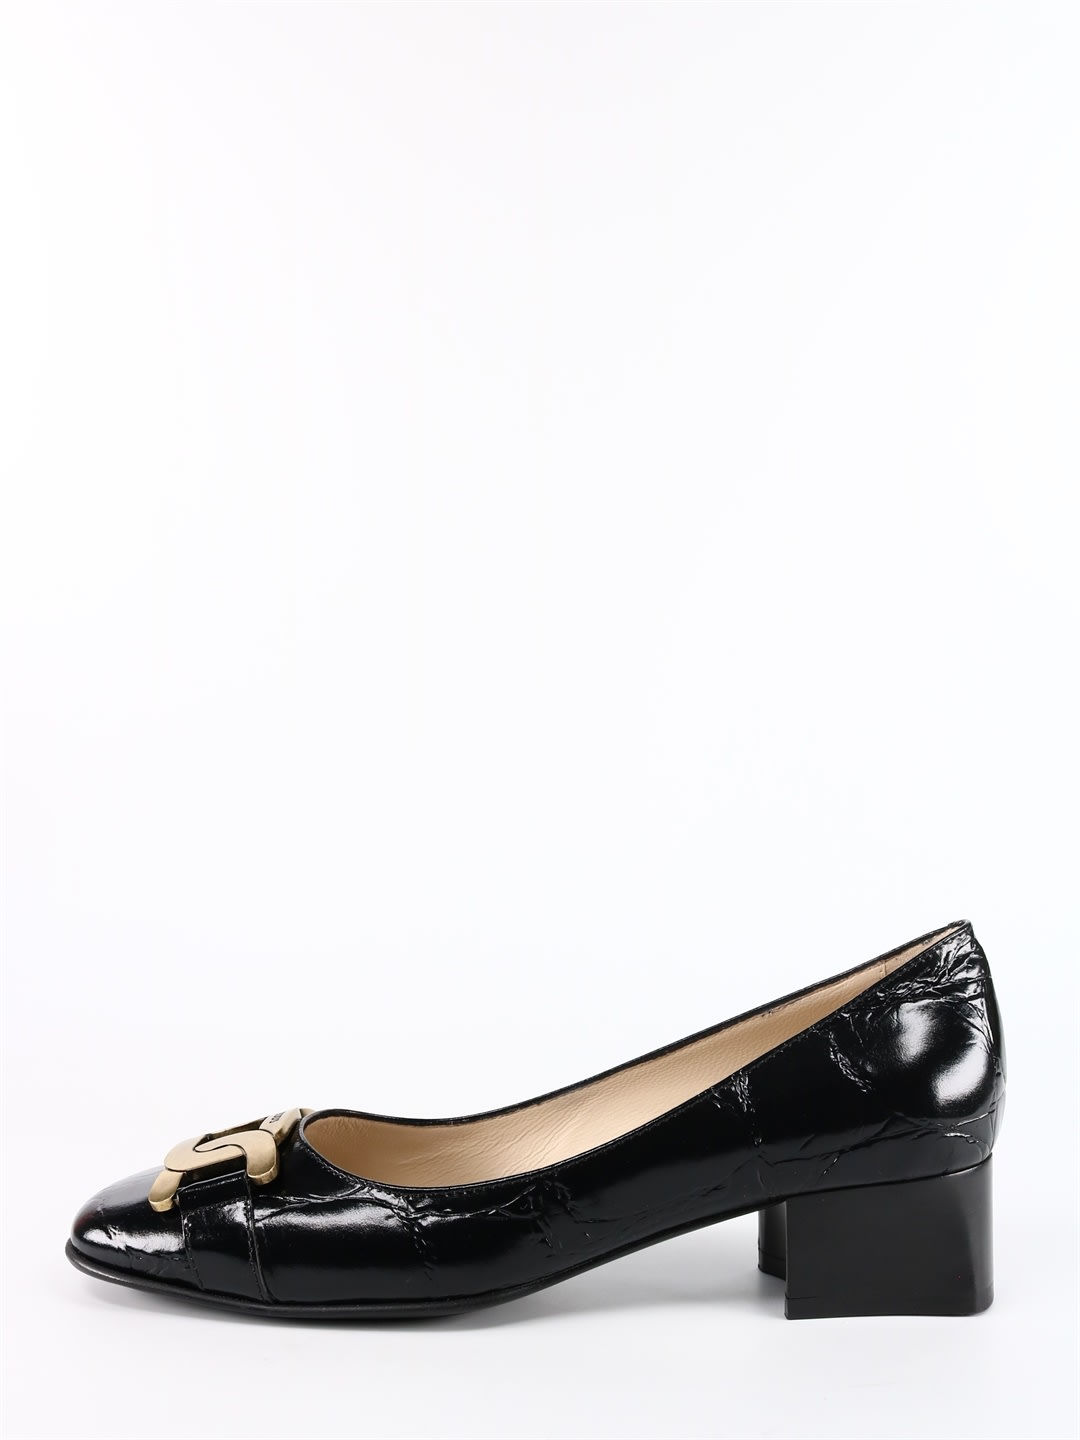 Pumps in crocodile print calfskin with square toe embellished with an antique gold metal chain. Low block heel and embossed finish. Heel: 3. 5 cmComposition: 100% Calf Leather